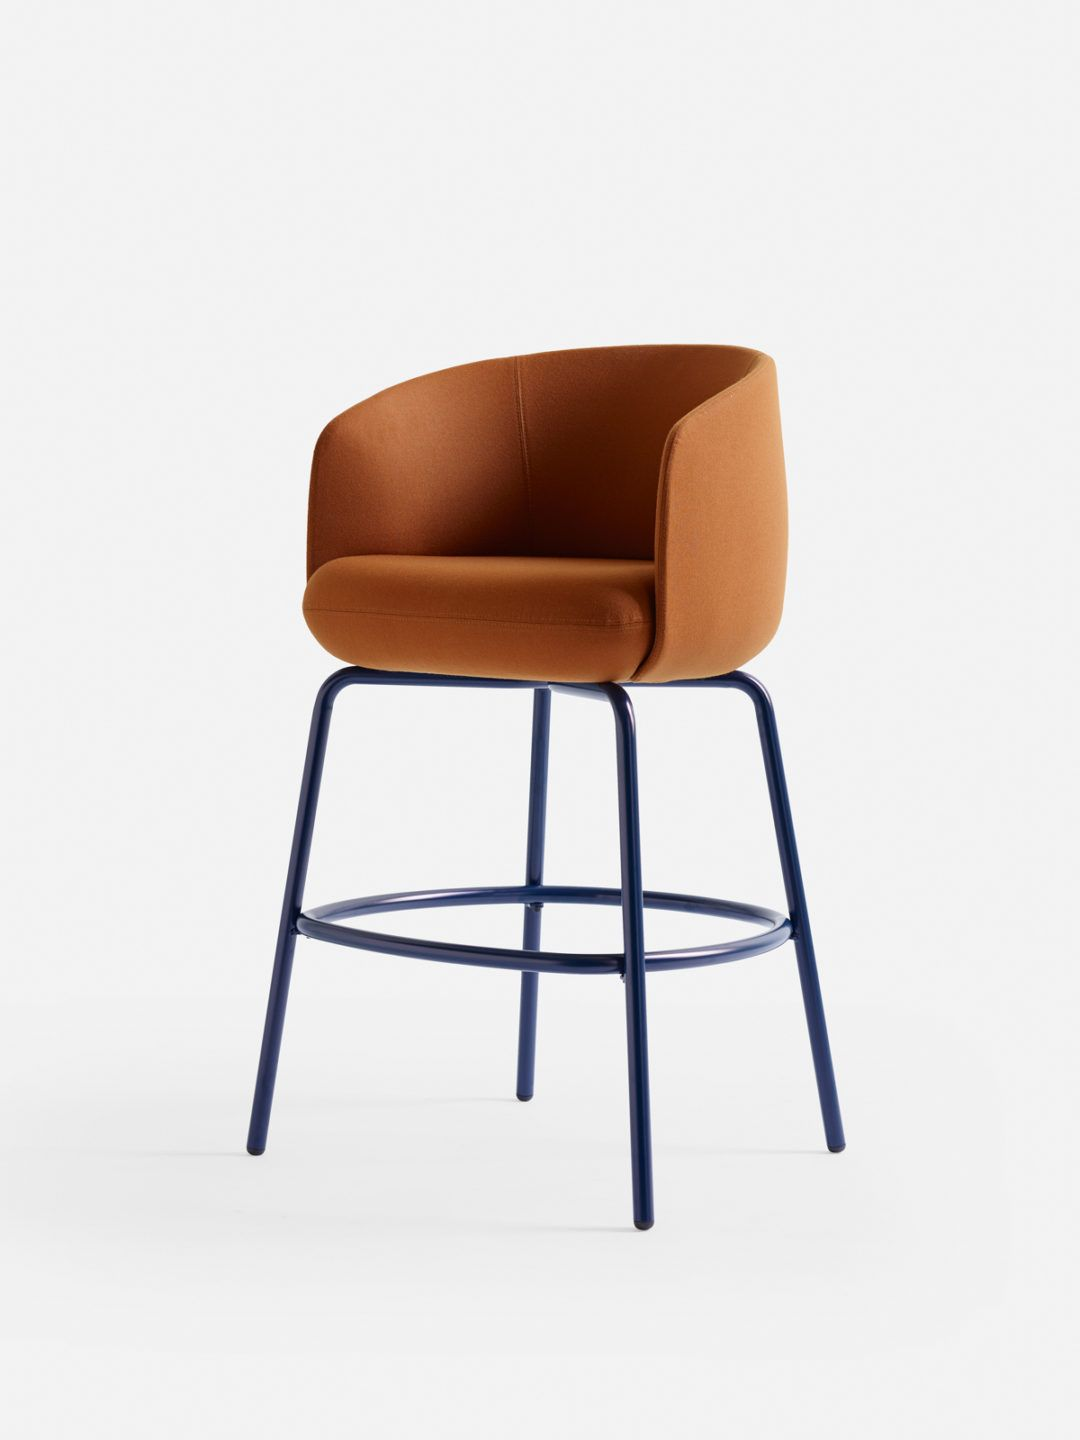 Nest Collection Designed By Form Us With Love For +Halle | Pinterest ...